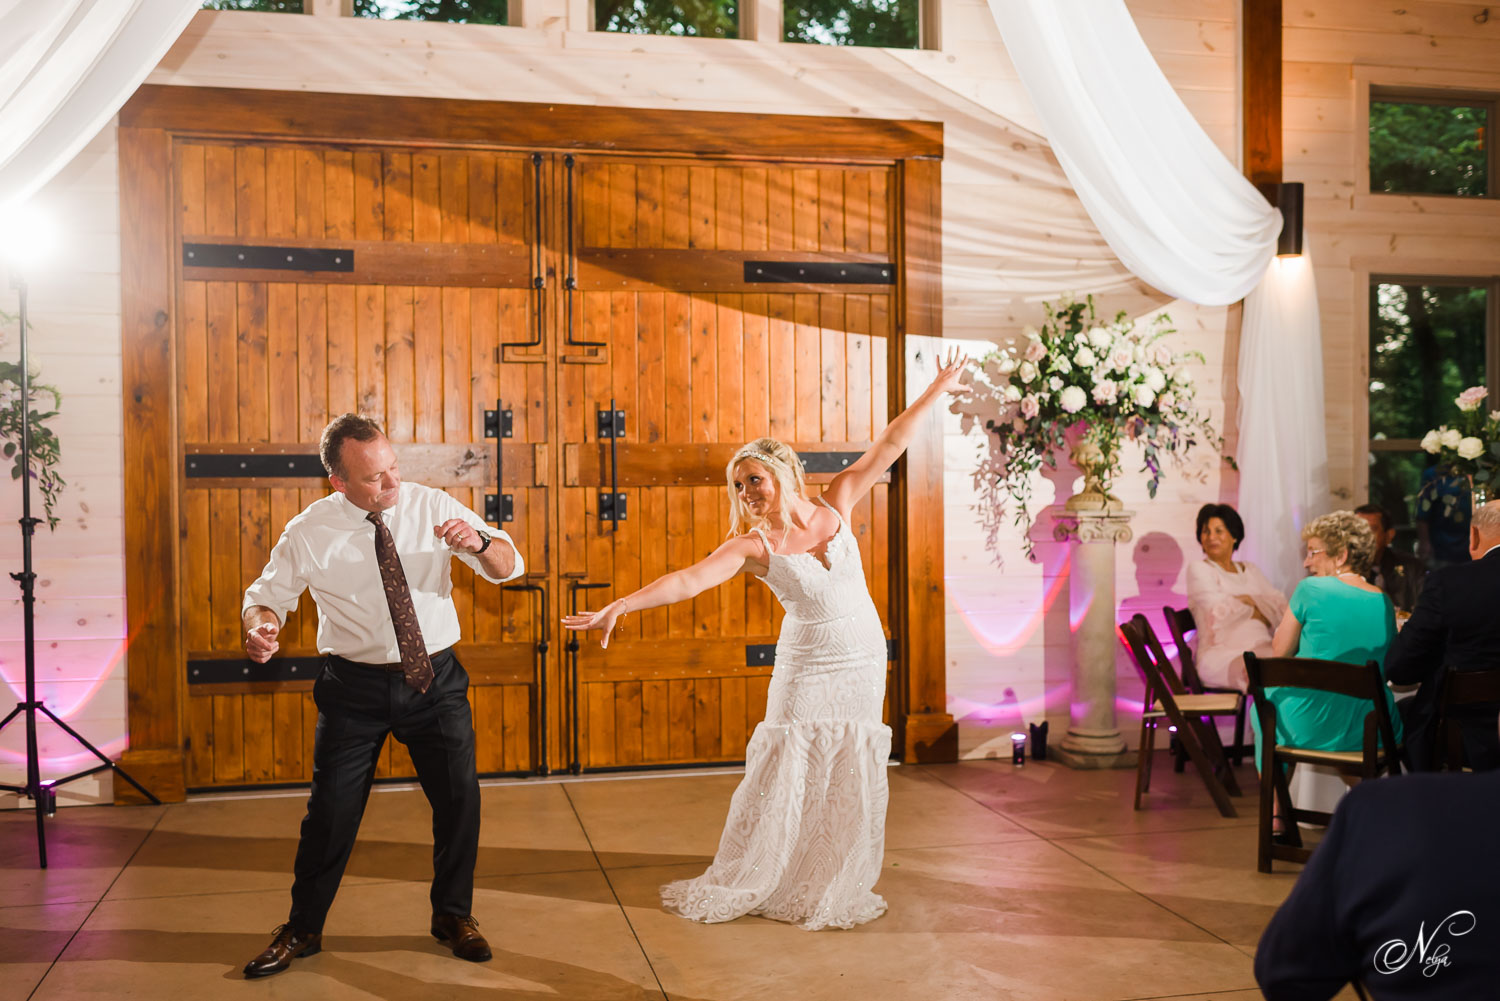 bride and her dad dancing a special dance at her wedding reception